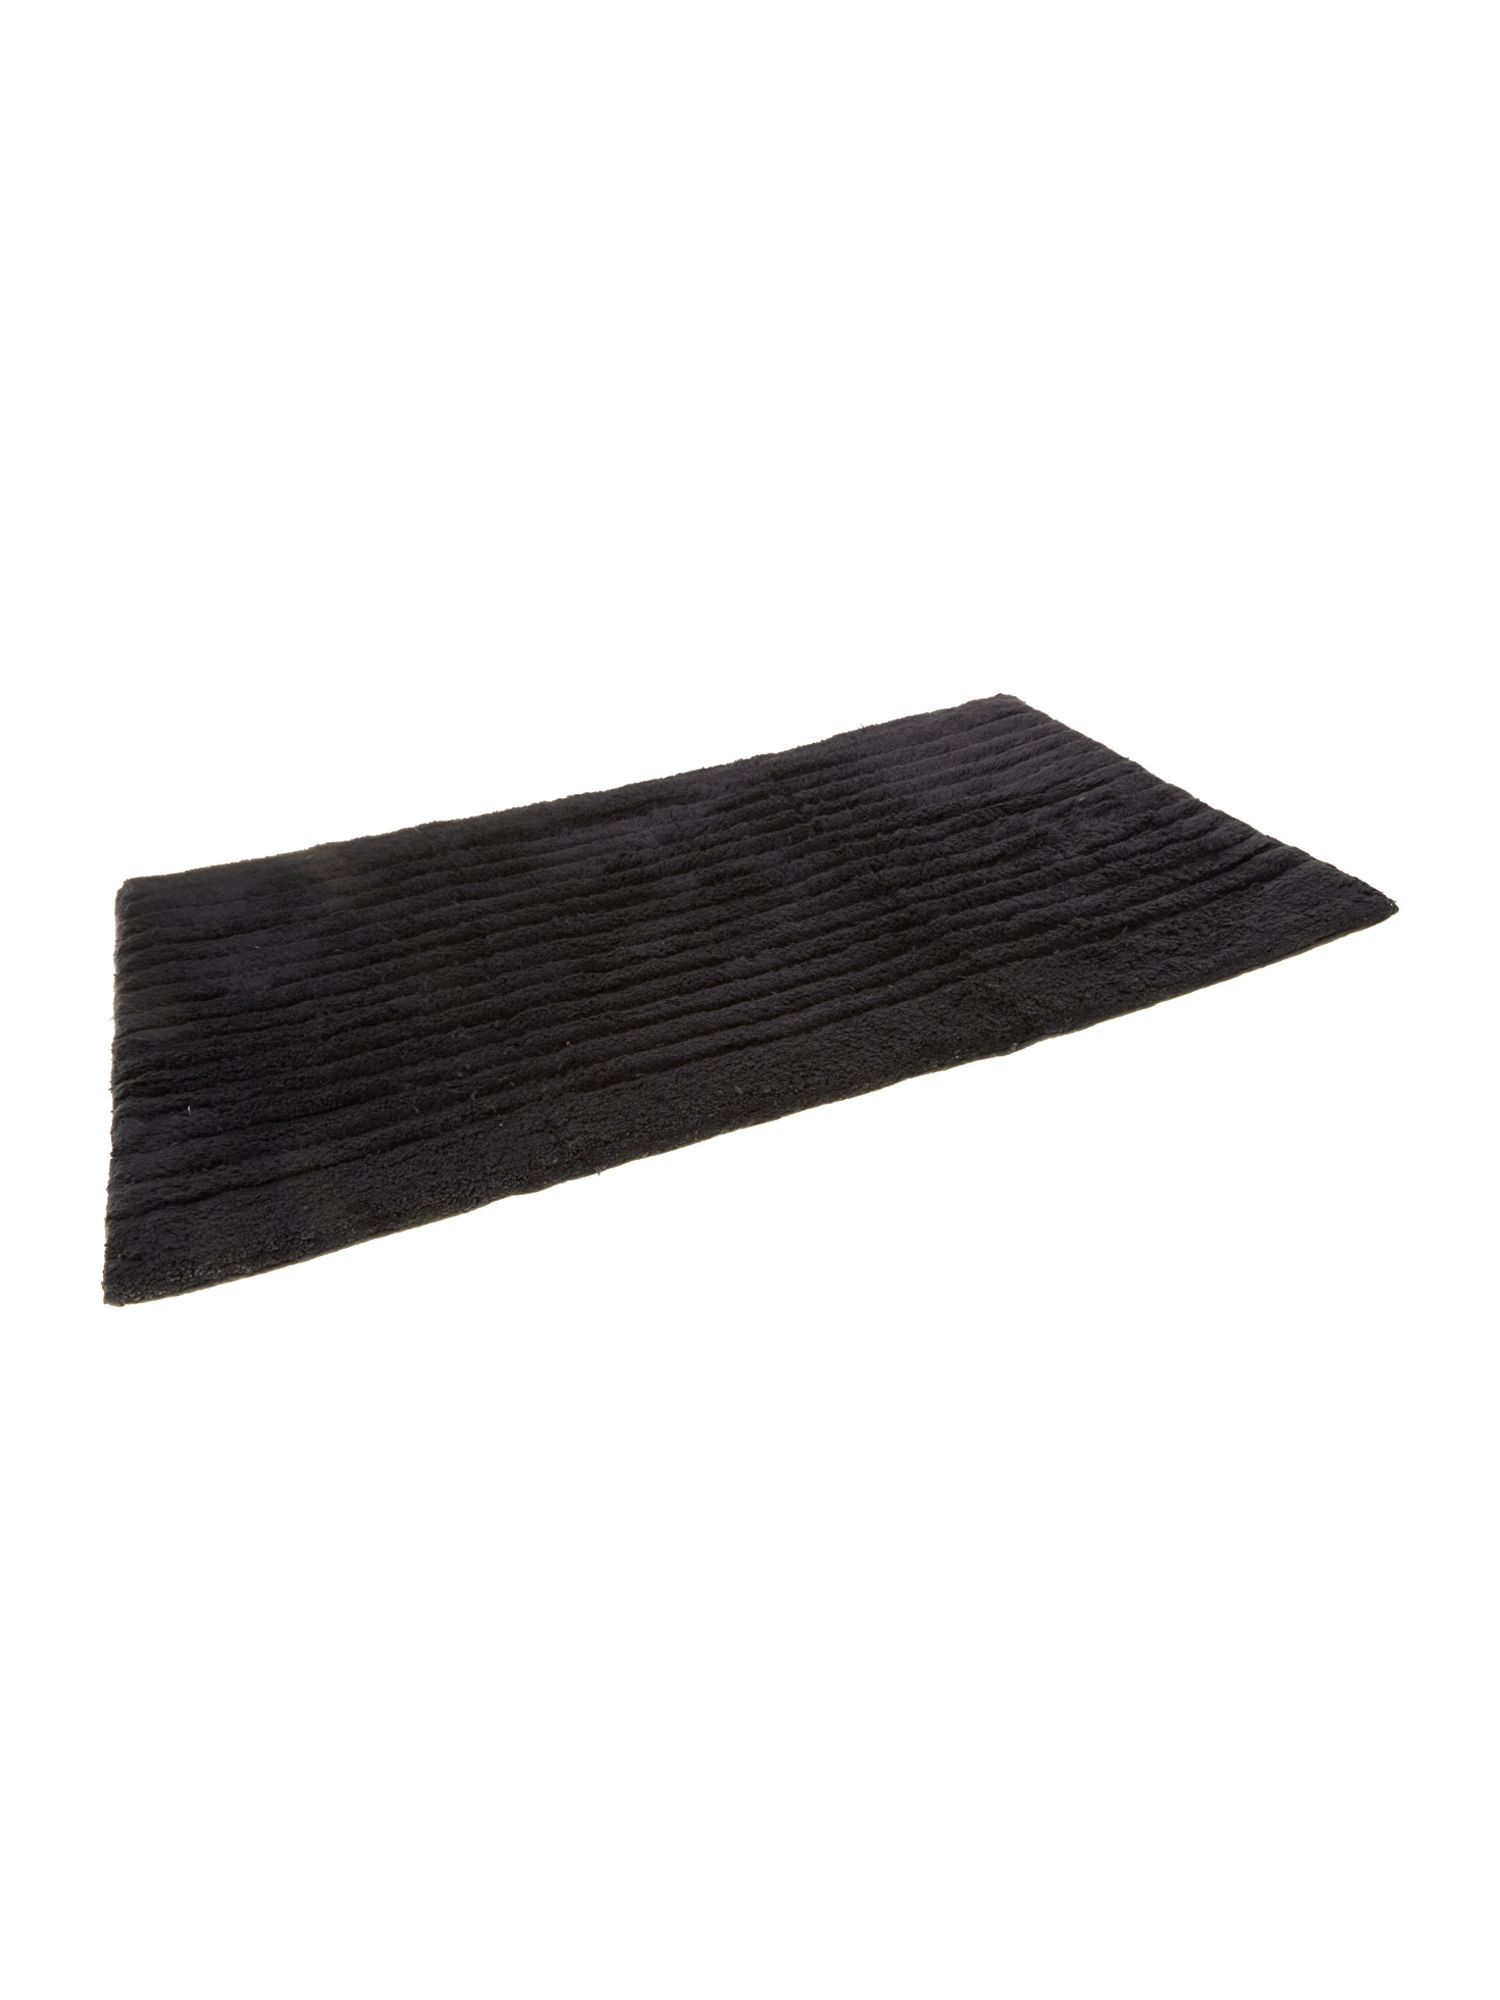 Classic luxury bathmat petrol